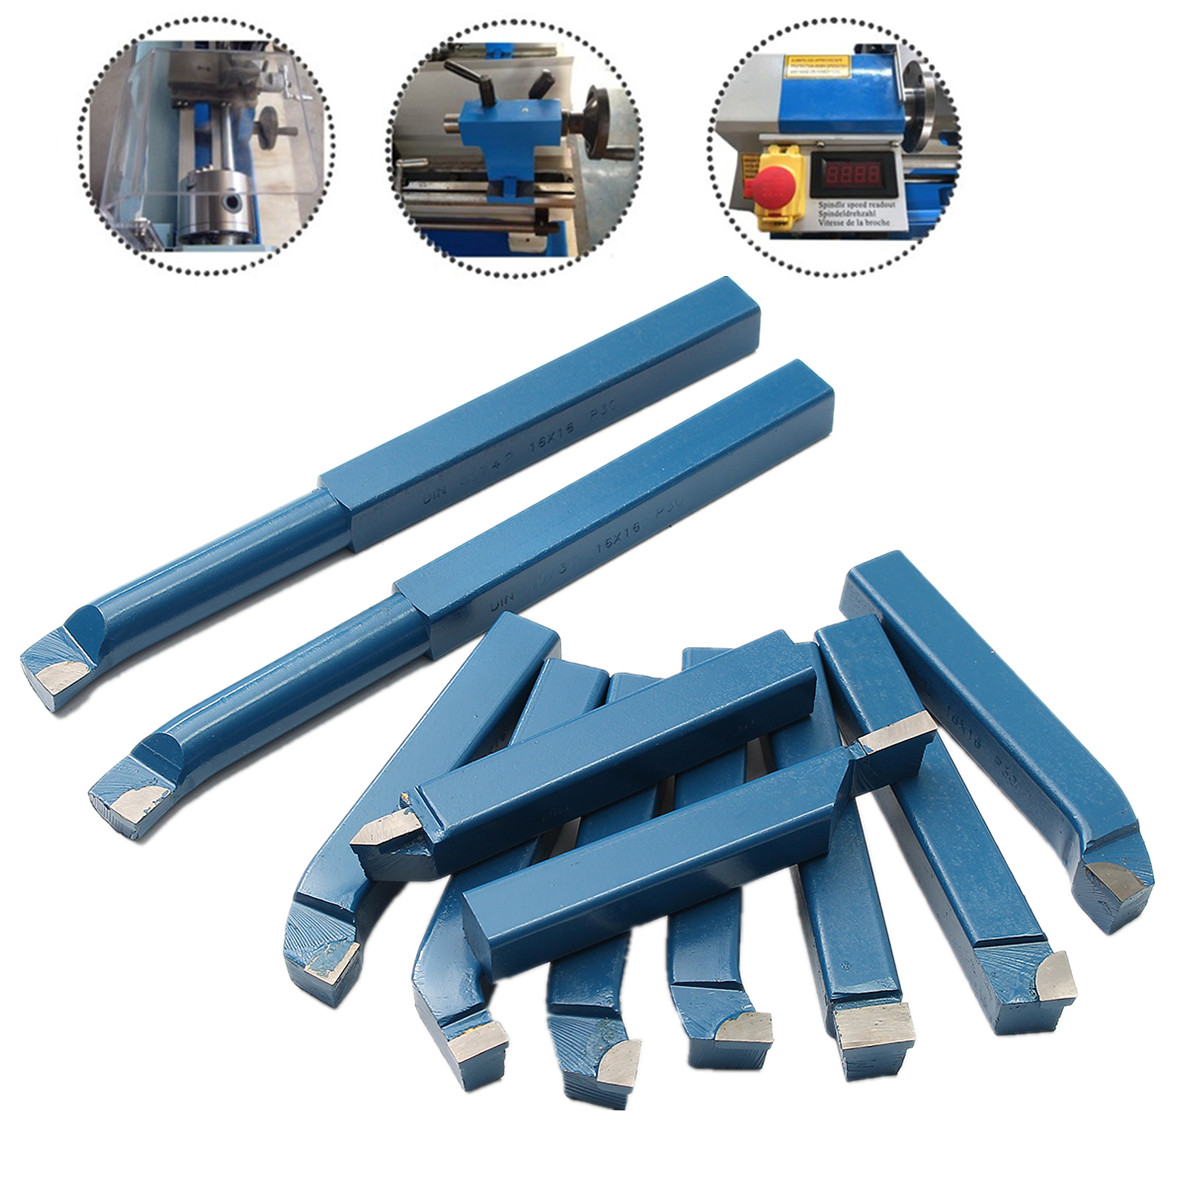 Metal Cutting Turning Boring Bit 11 x 16mm(5/8) Carbide Tip Carbide Steel Mini Lathe Tool Set for Metal Working Lathe Turning 1pc turning milling lathe 5mm thickness x 5 6 8 10 12 14 16 18 20 25 30 35 40 45 50mm x200mm length grinder hss blank tool bit